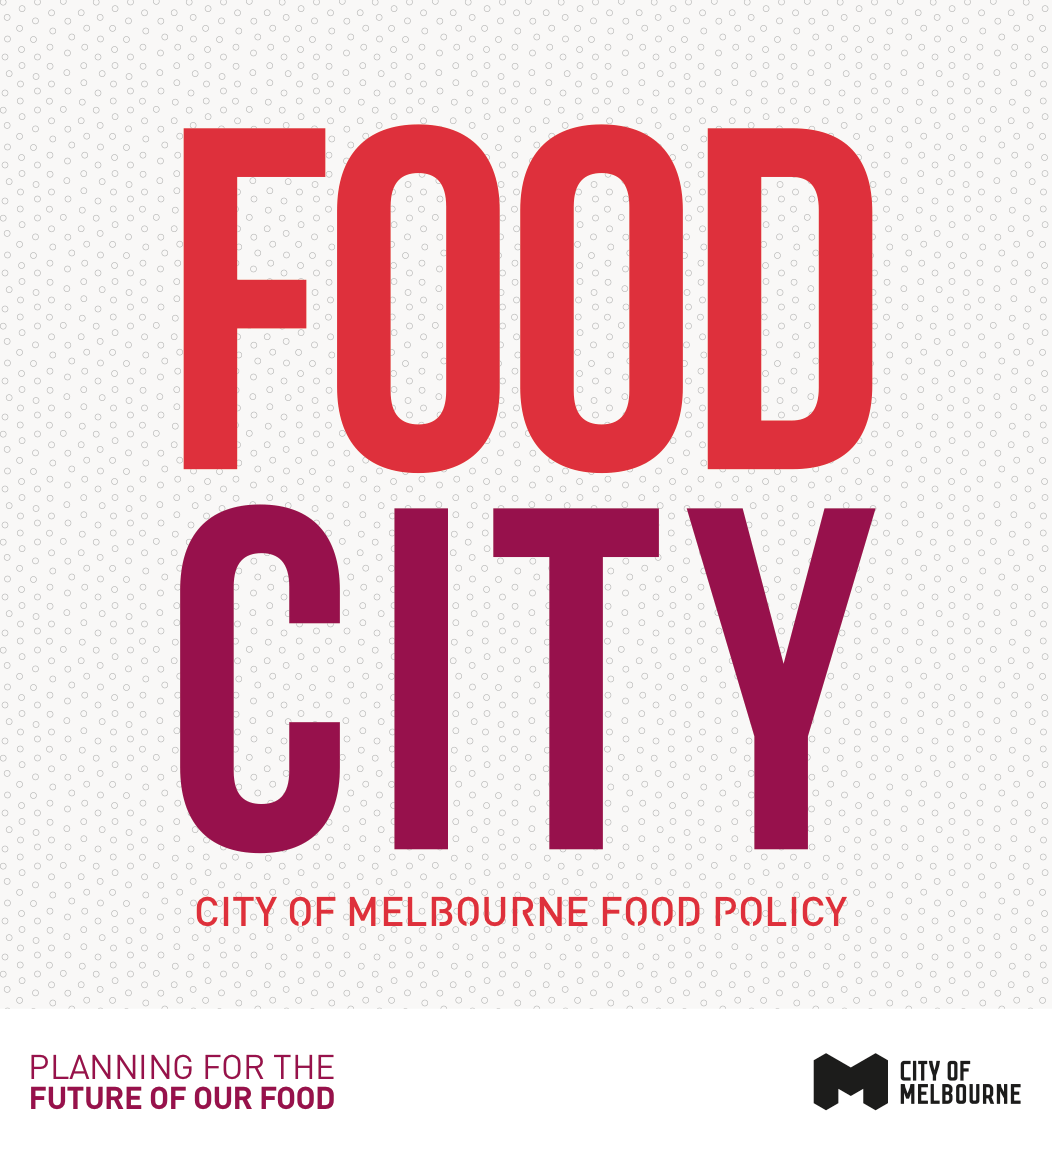 City of Melbourne Urban Agriculture Policy Snapshot.